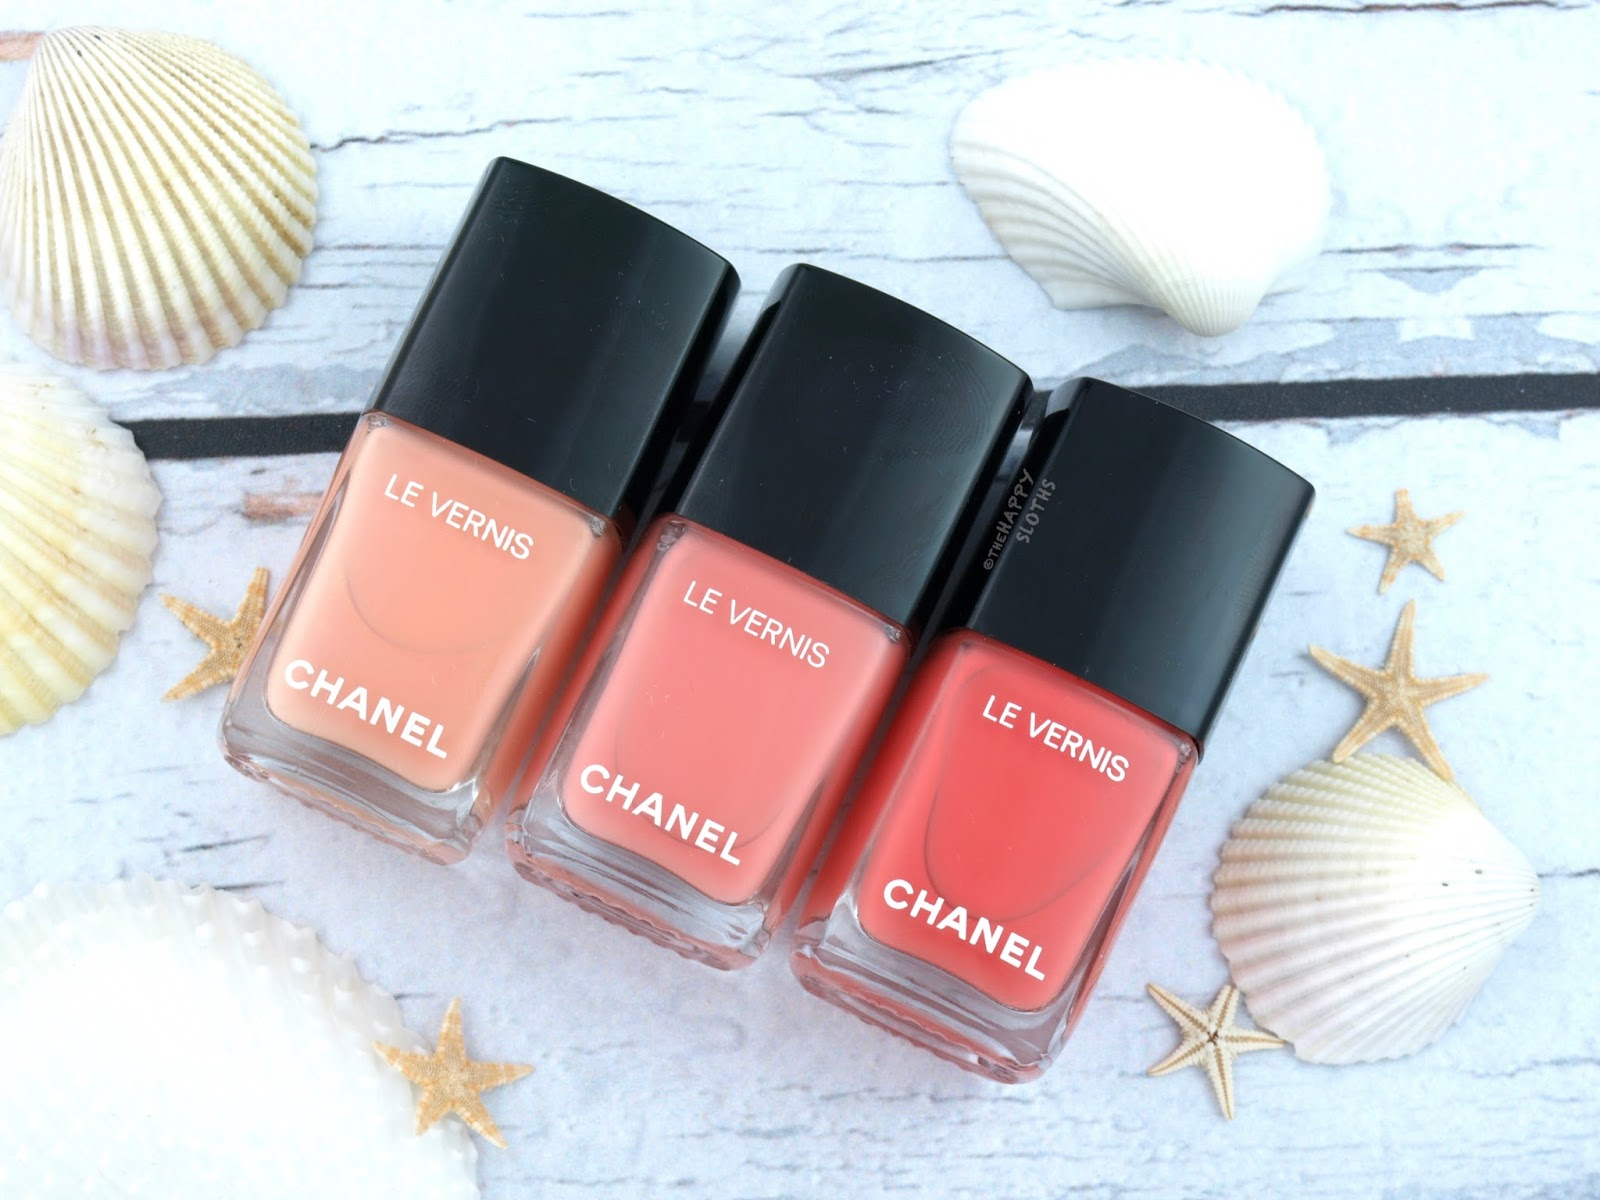 Chanel Summer 2017 Cruise Collection Le Vernis: Review and Swatches